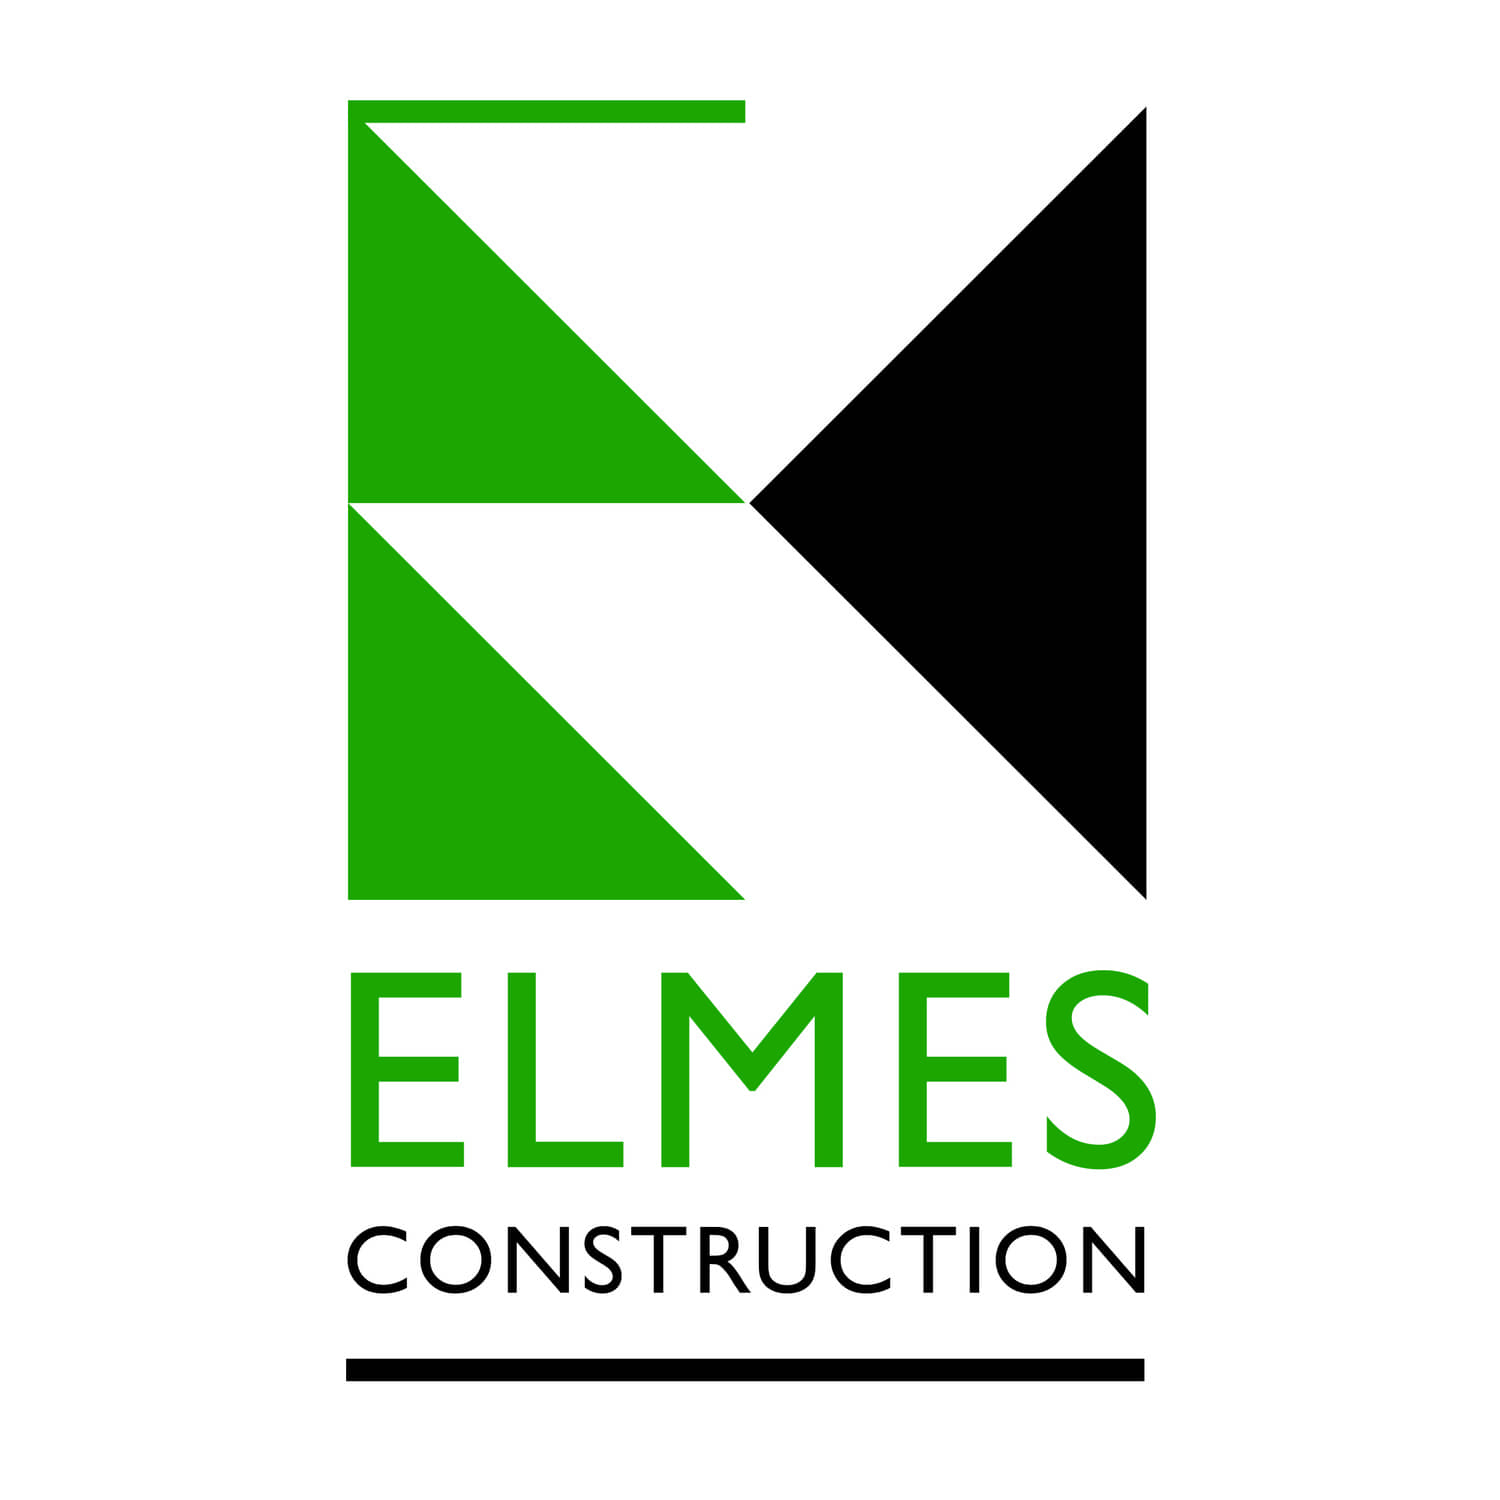 Builders Plymouth | Building Contractor Plymouth | Bricklayers Plymouth | General Builders Plymouth